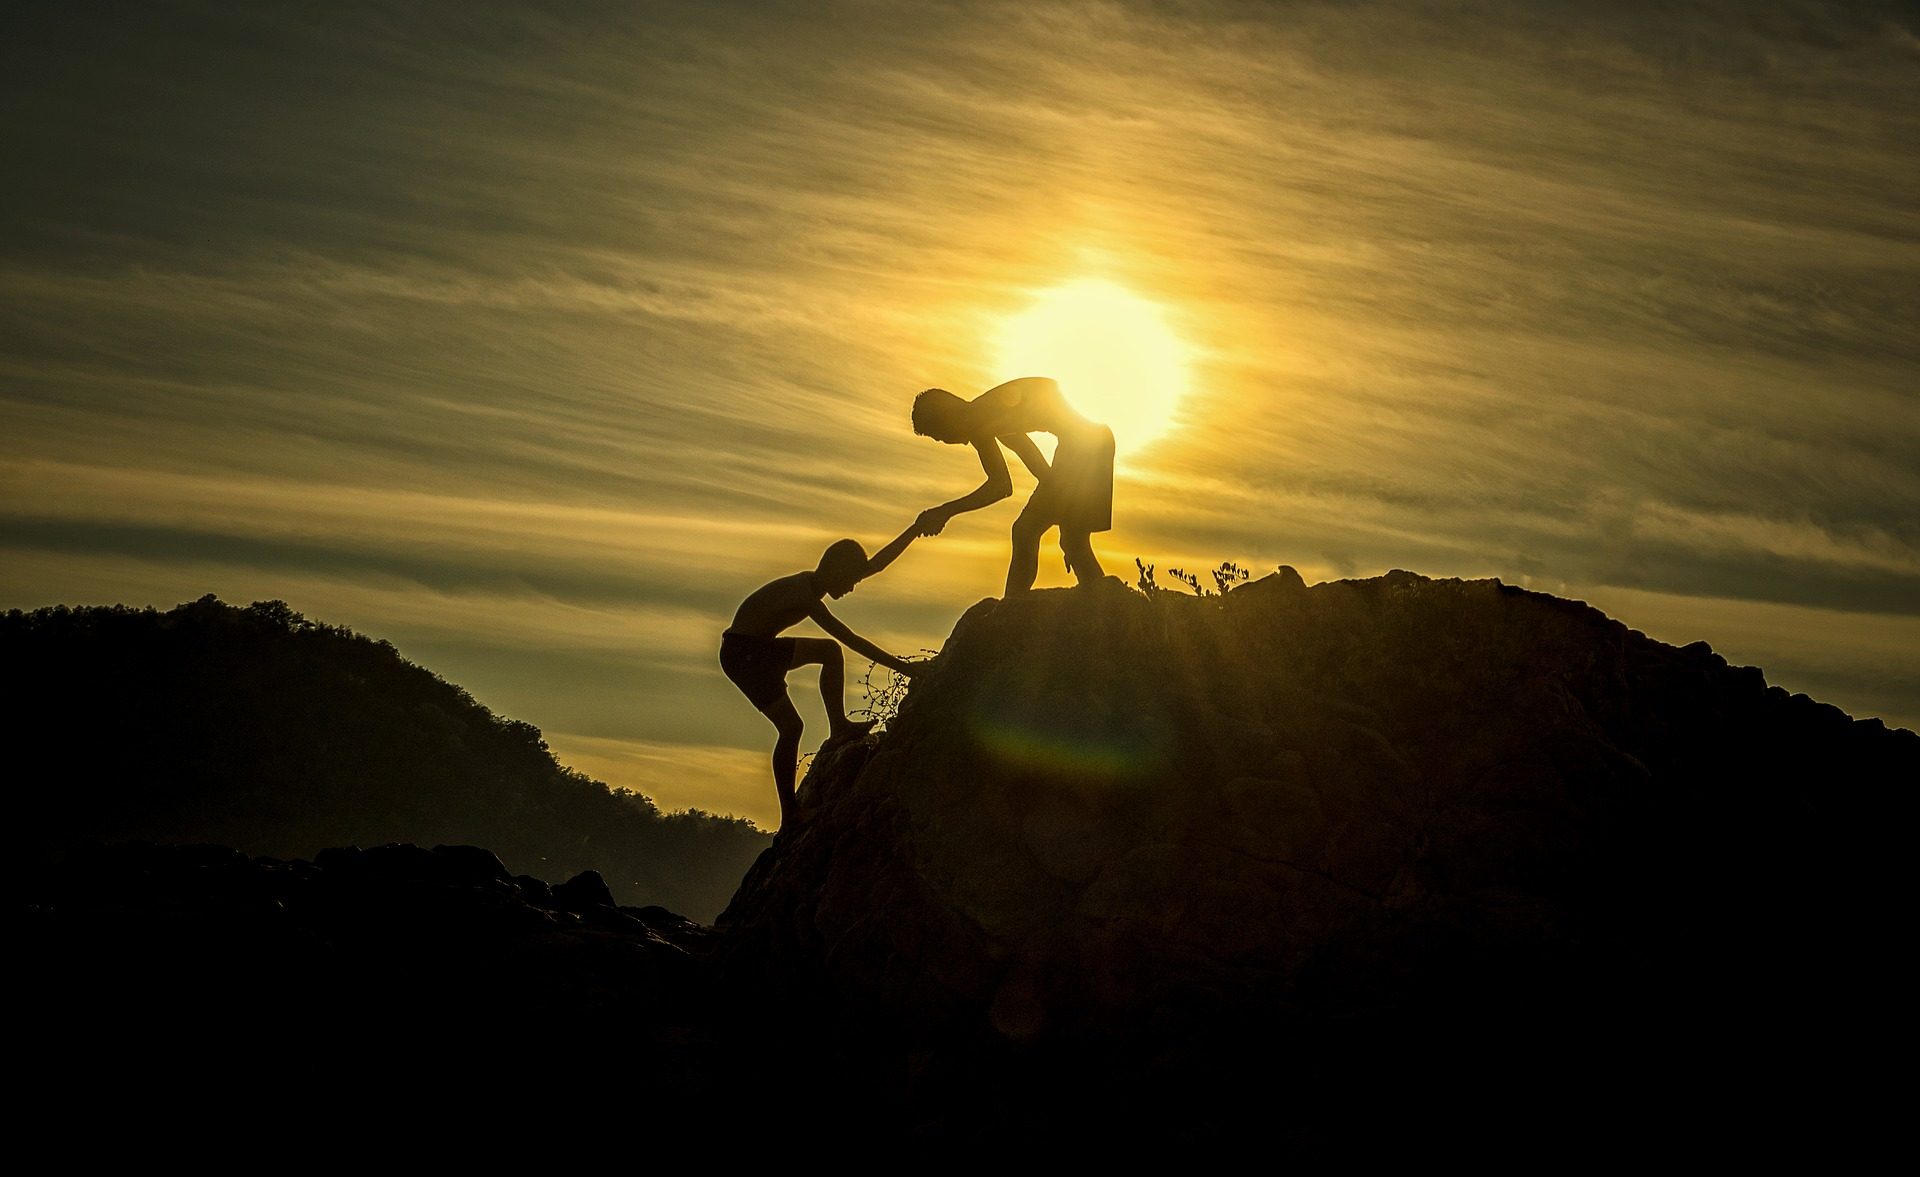 Two people working as a team to achieve